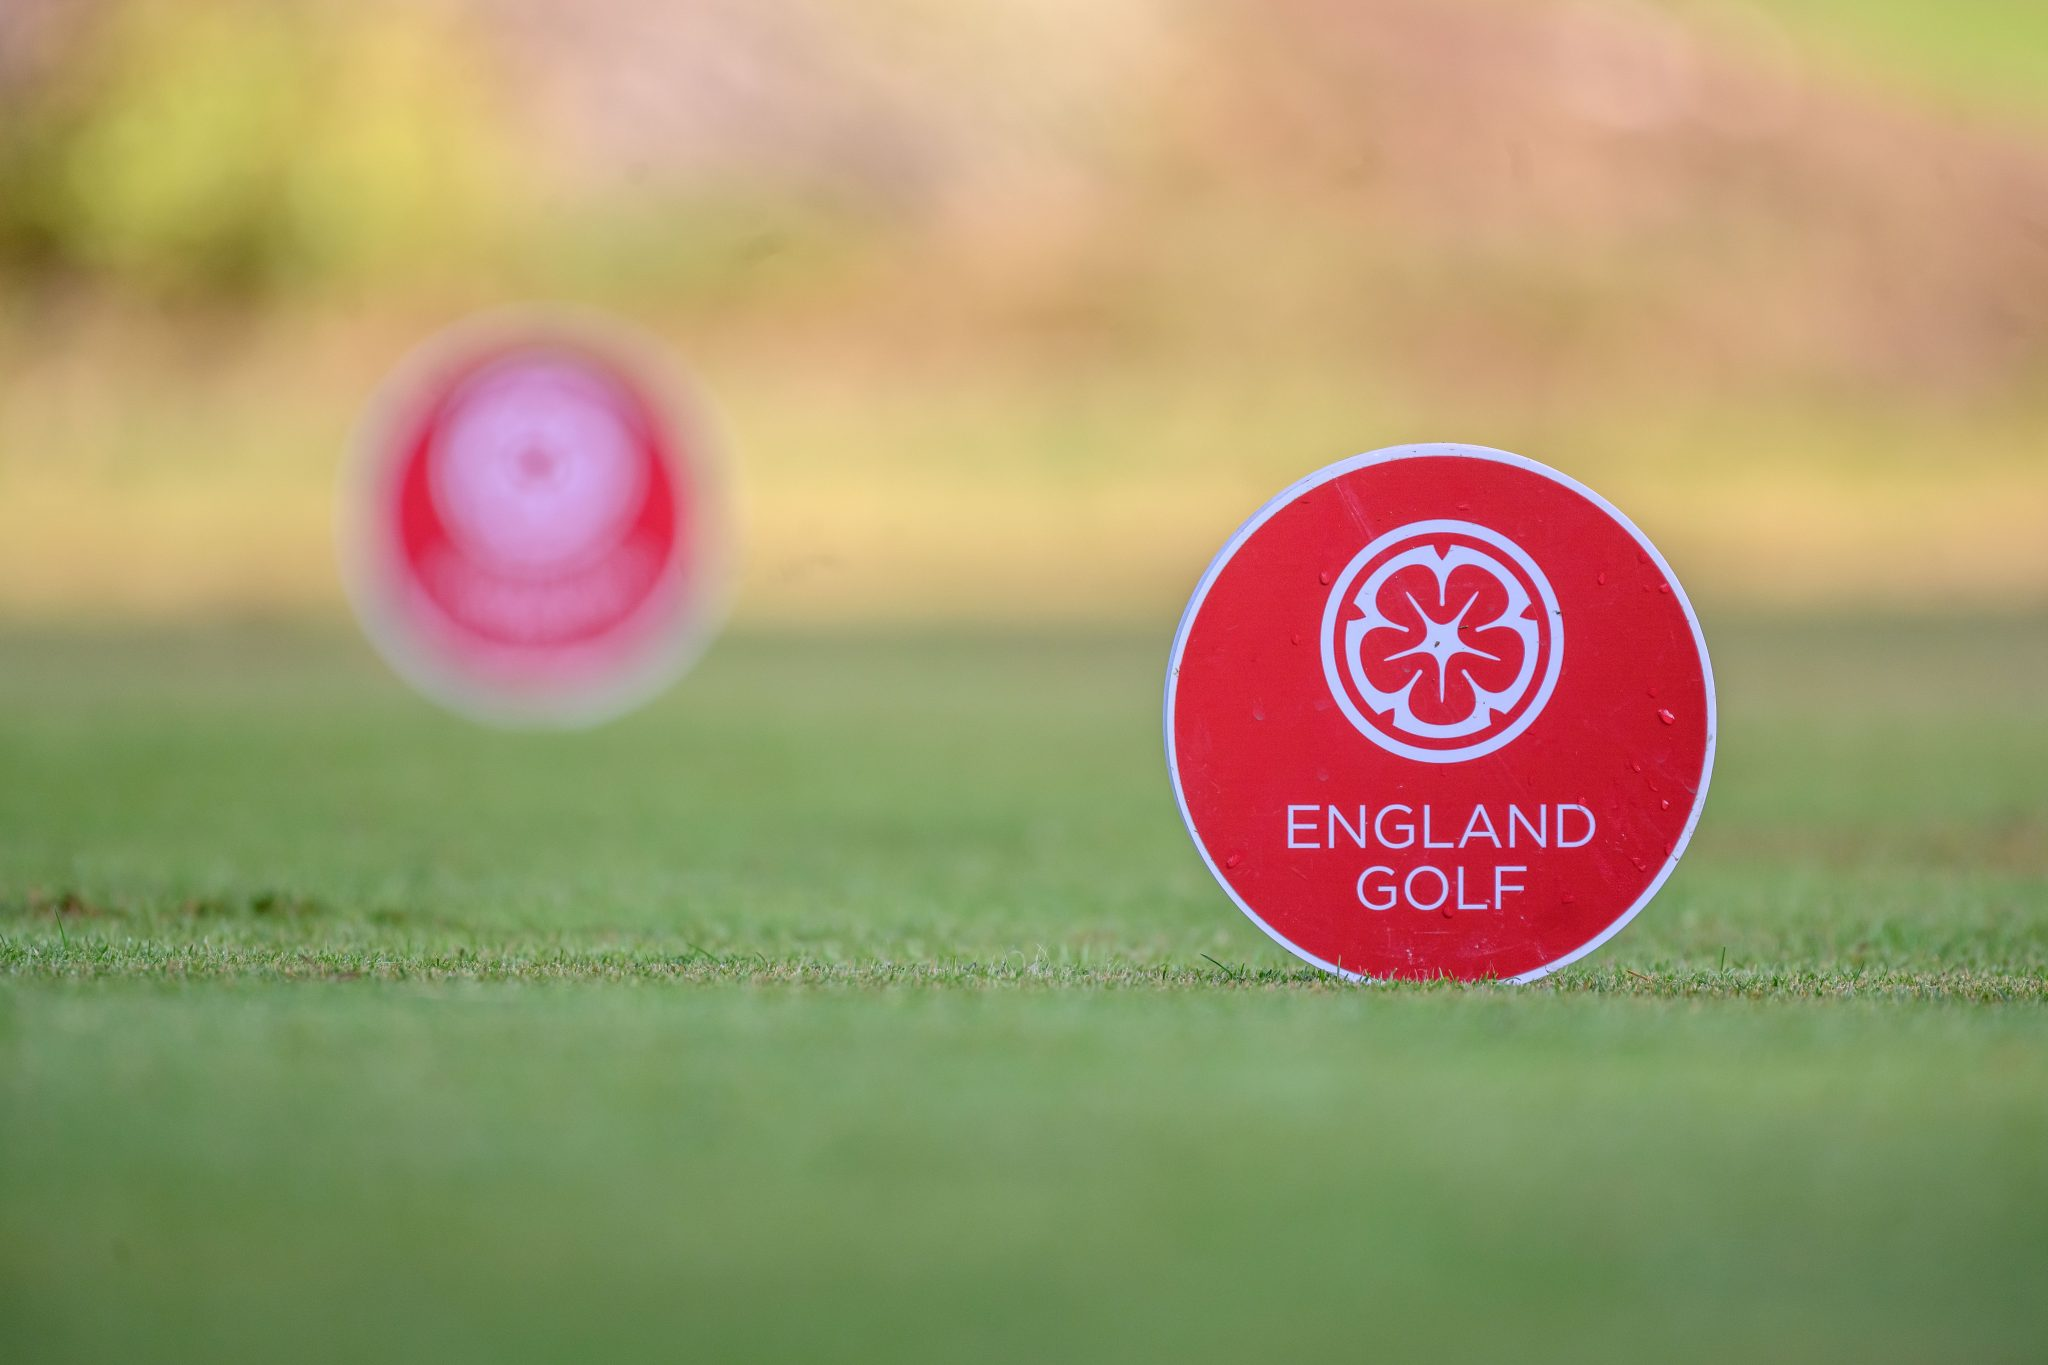 England Golf launches Dementia Friendly campaign ahead of World Alzheimer's Day